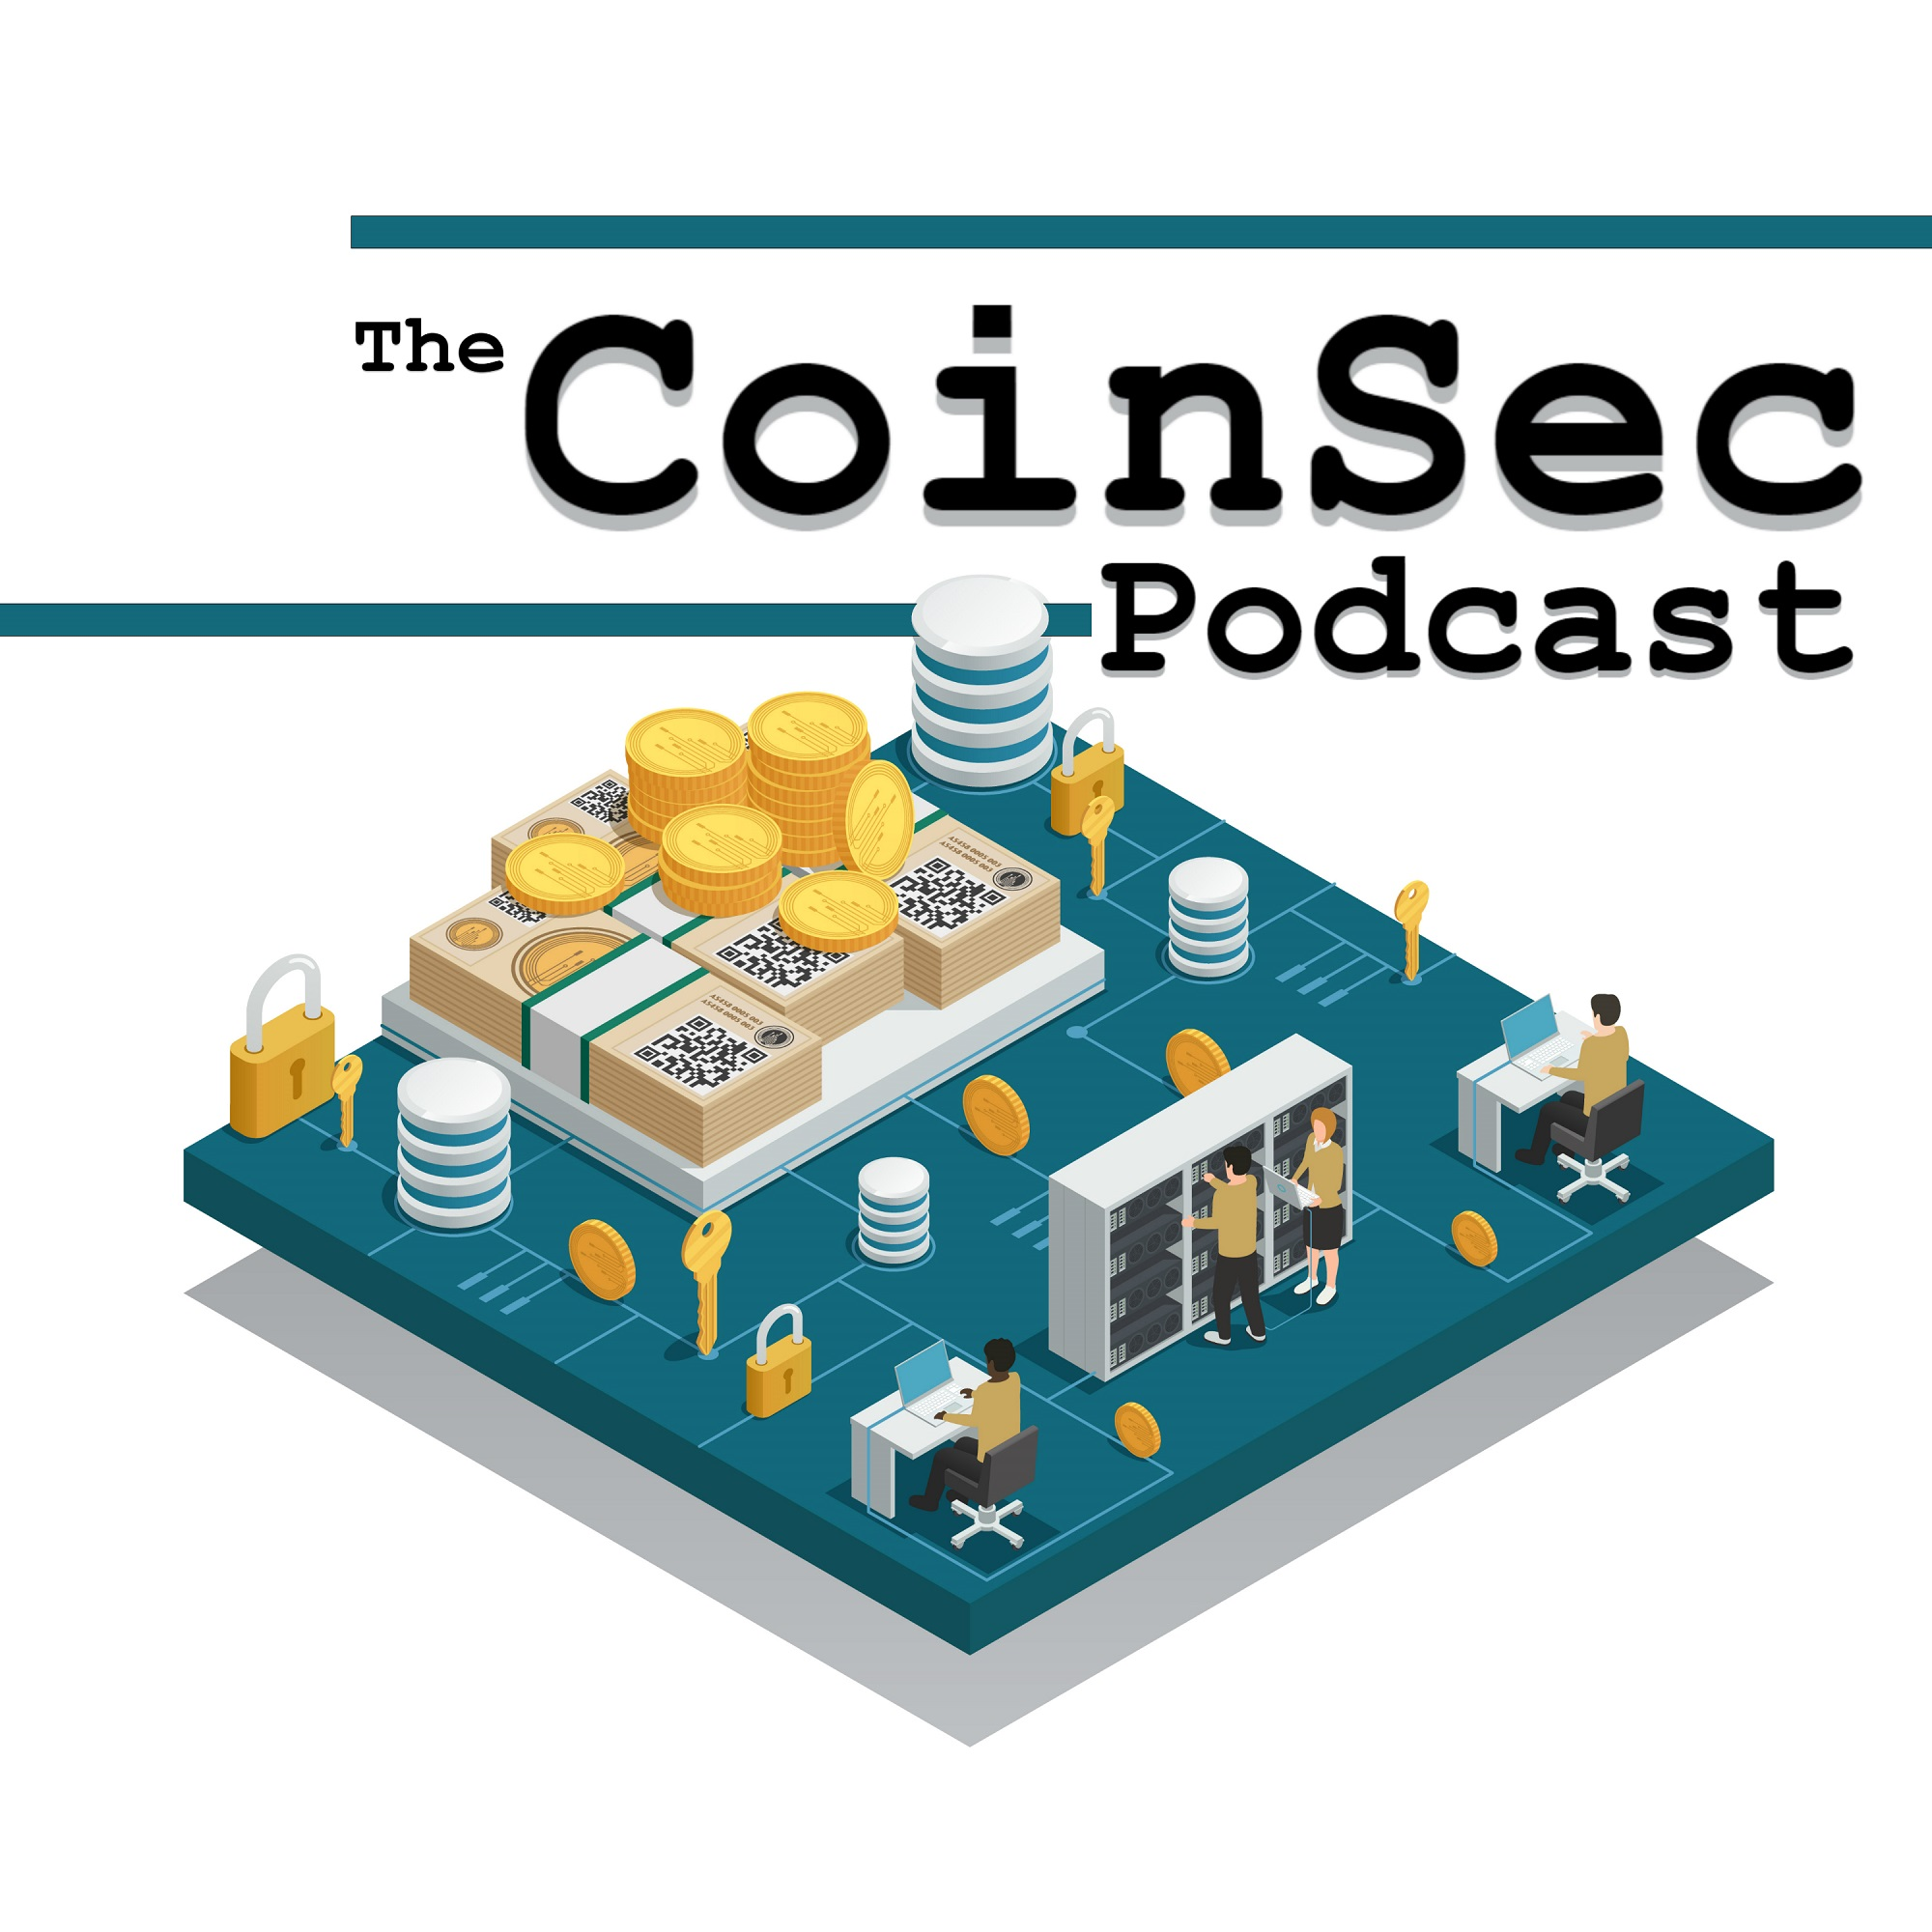 Episode 36: Grin, Cryptopia Hacked, Critical Beam Vuln, and Pirate Bay Torrent Malware show art